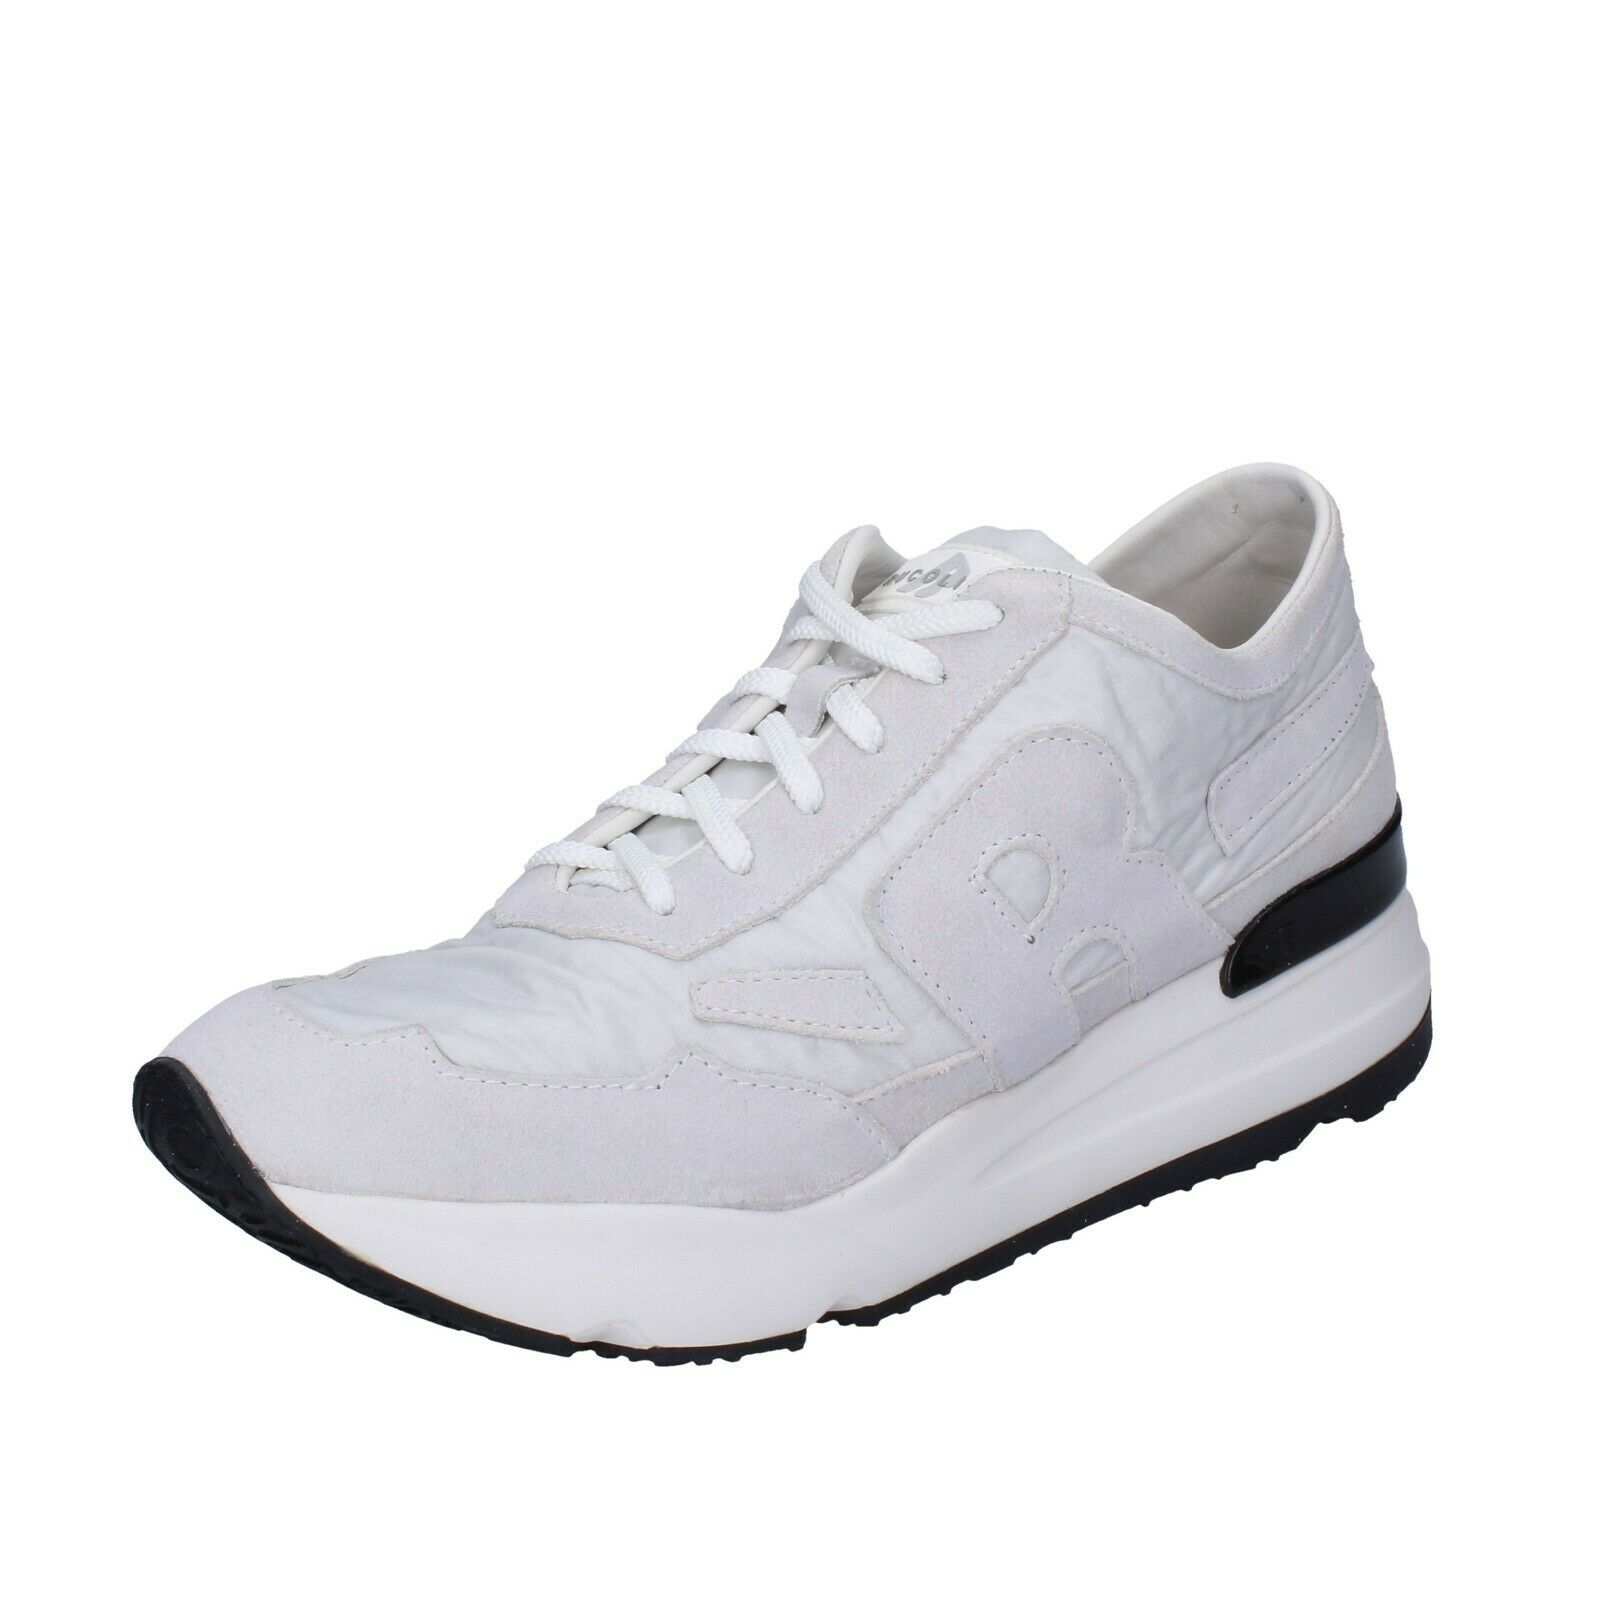 Men's shoes RUCO LINE 11 (EU 45) sneakers white suede textile BH392-45